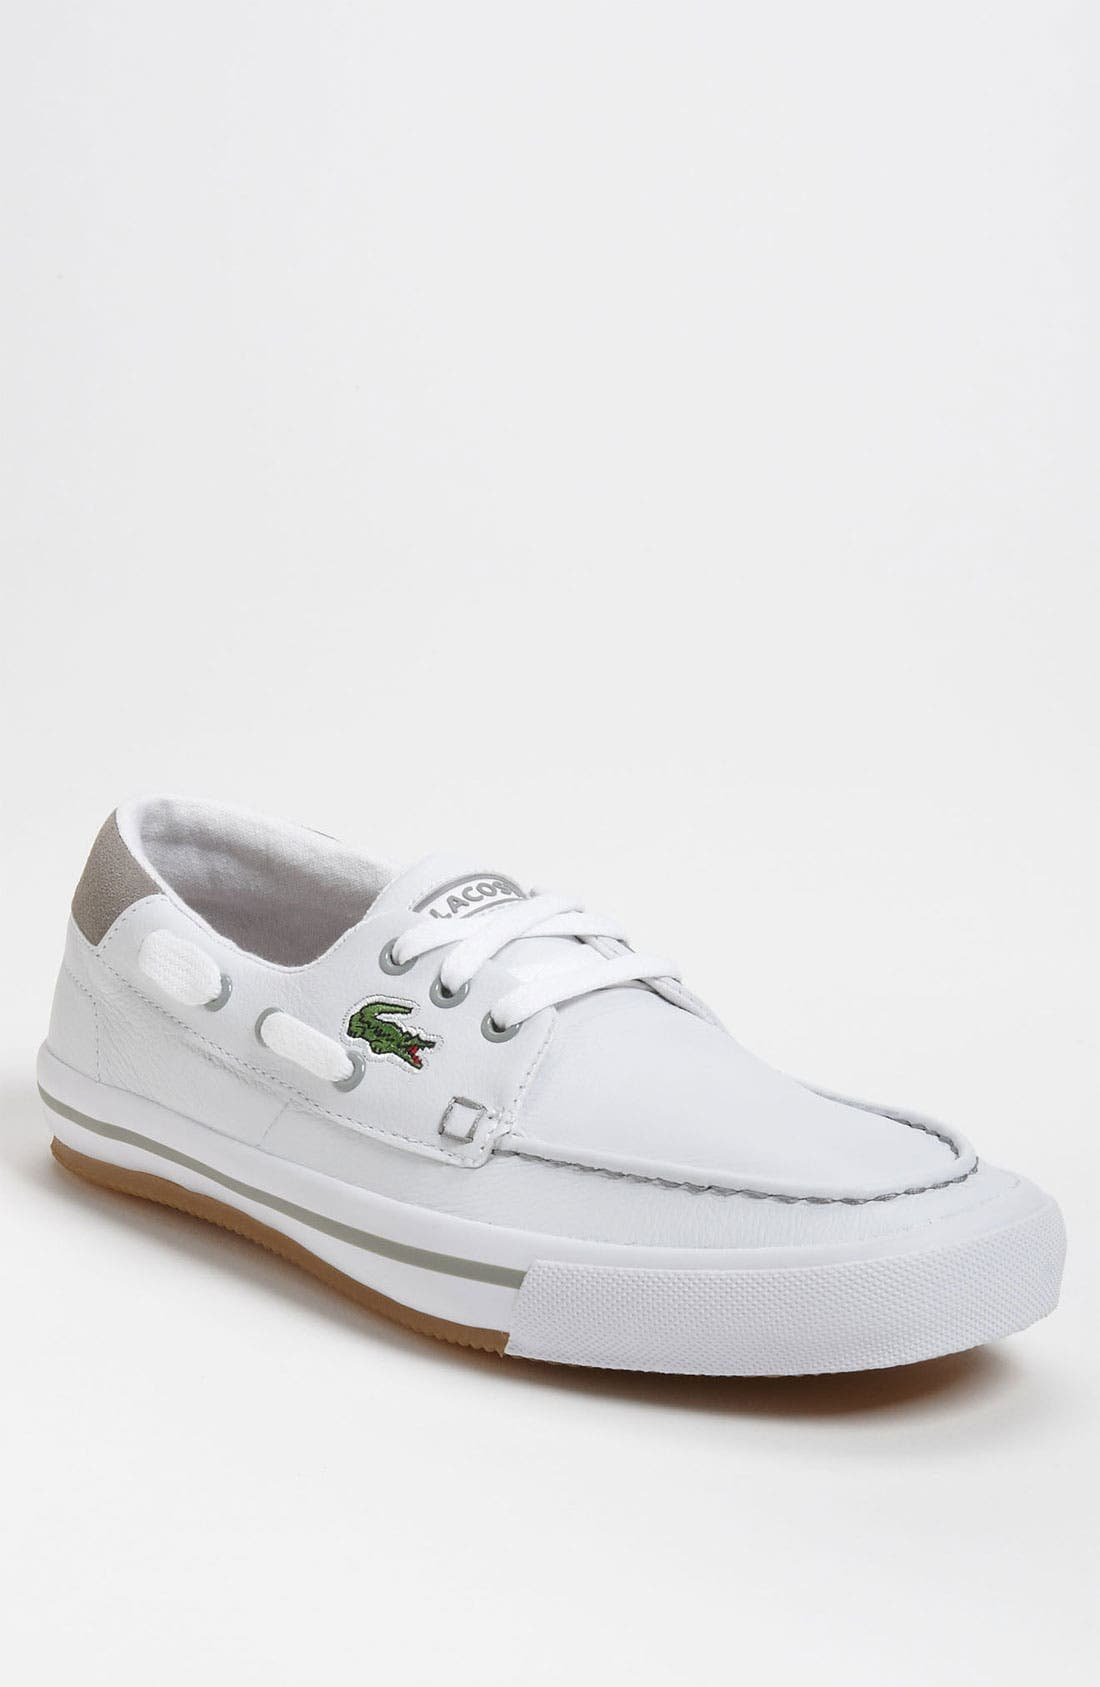 Main Image - Lacoste 'Sculler Low CR' Sneaker